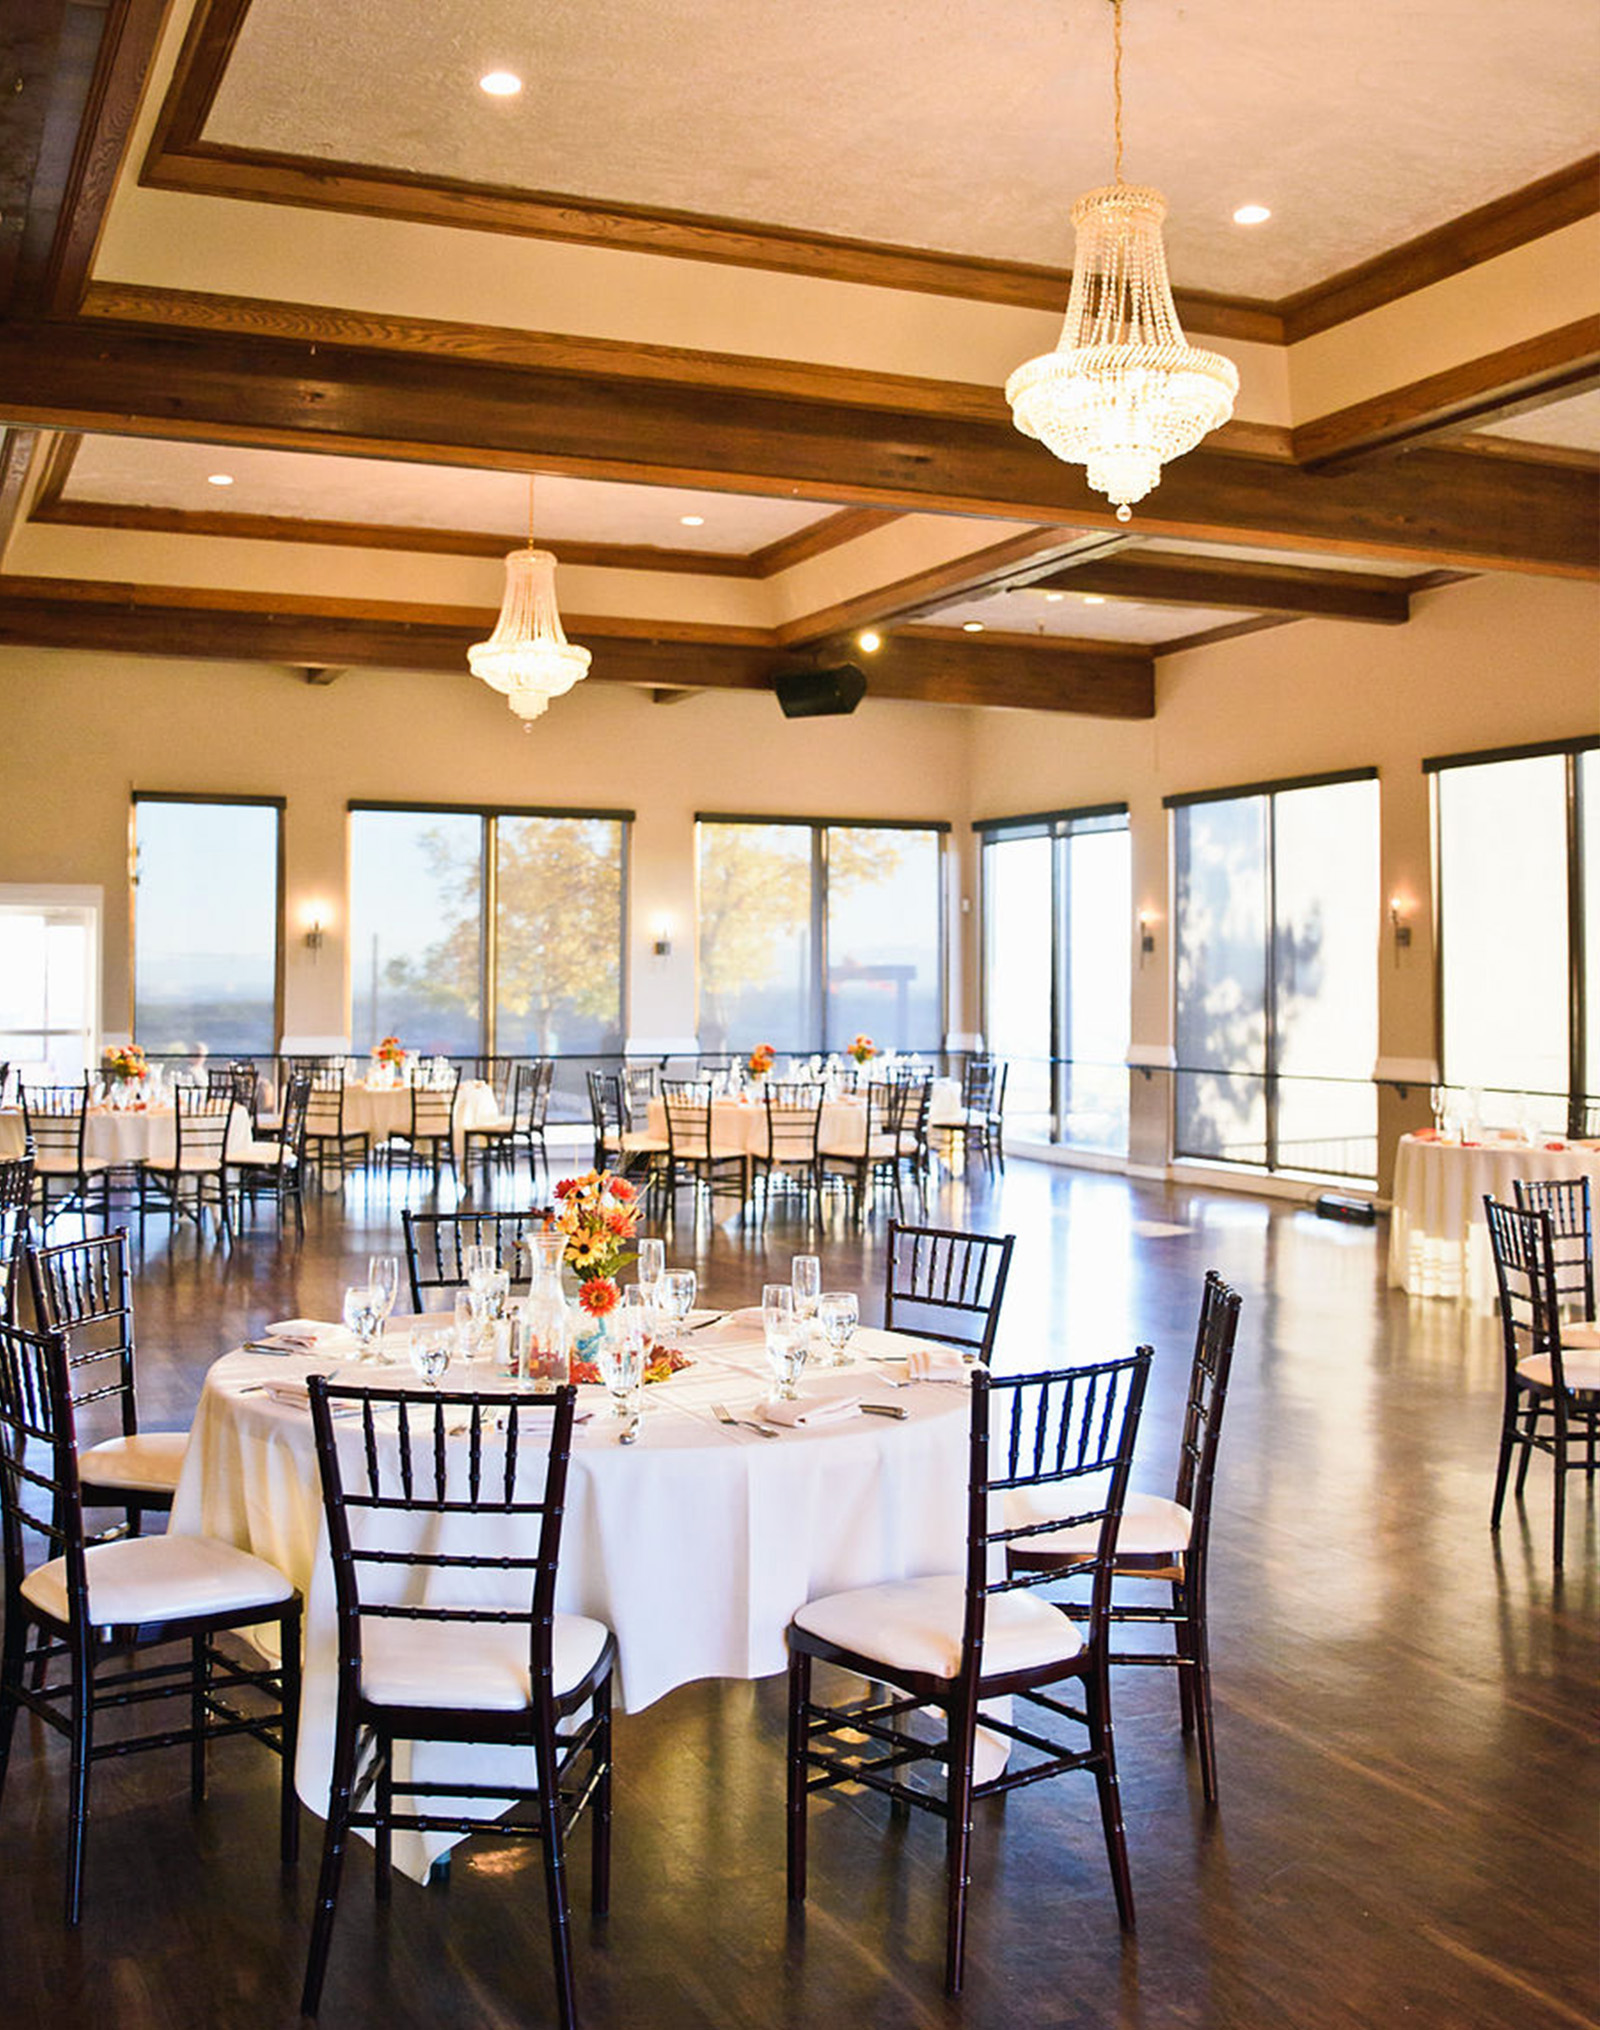 Banquet Room - Brittany Hill - Thornton, Colorado - Adams County - Weld County - Wedgewood Weddings